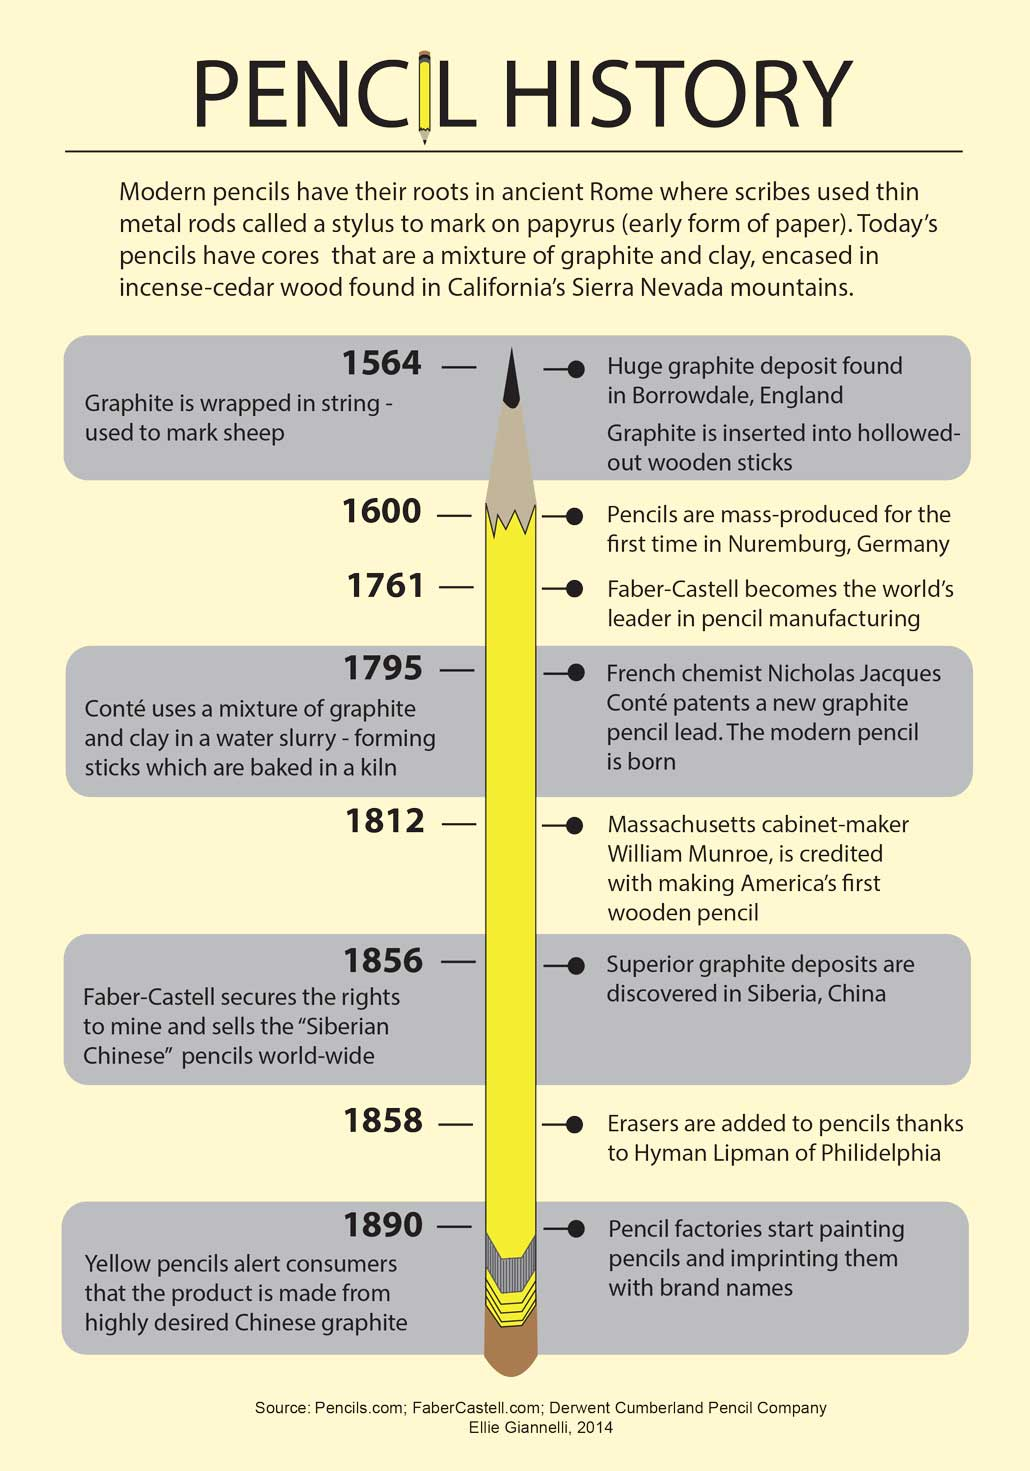 pencil history timeline